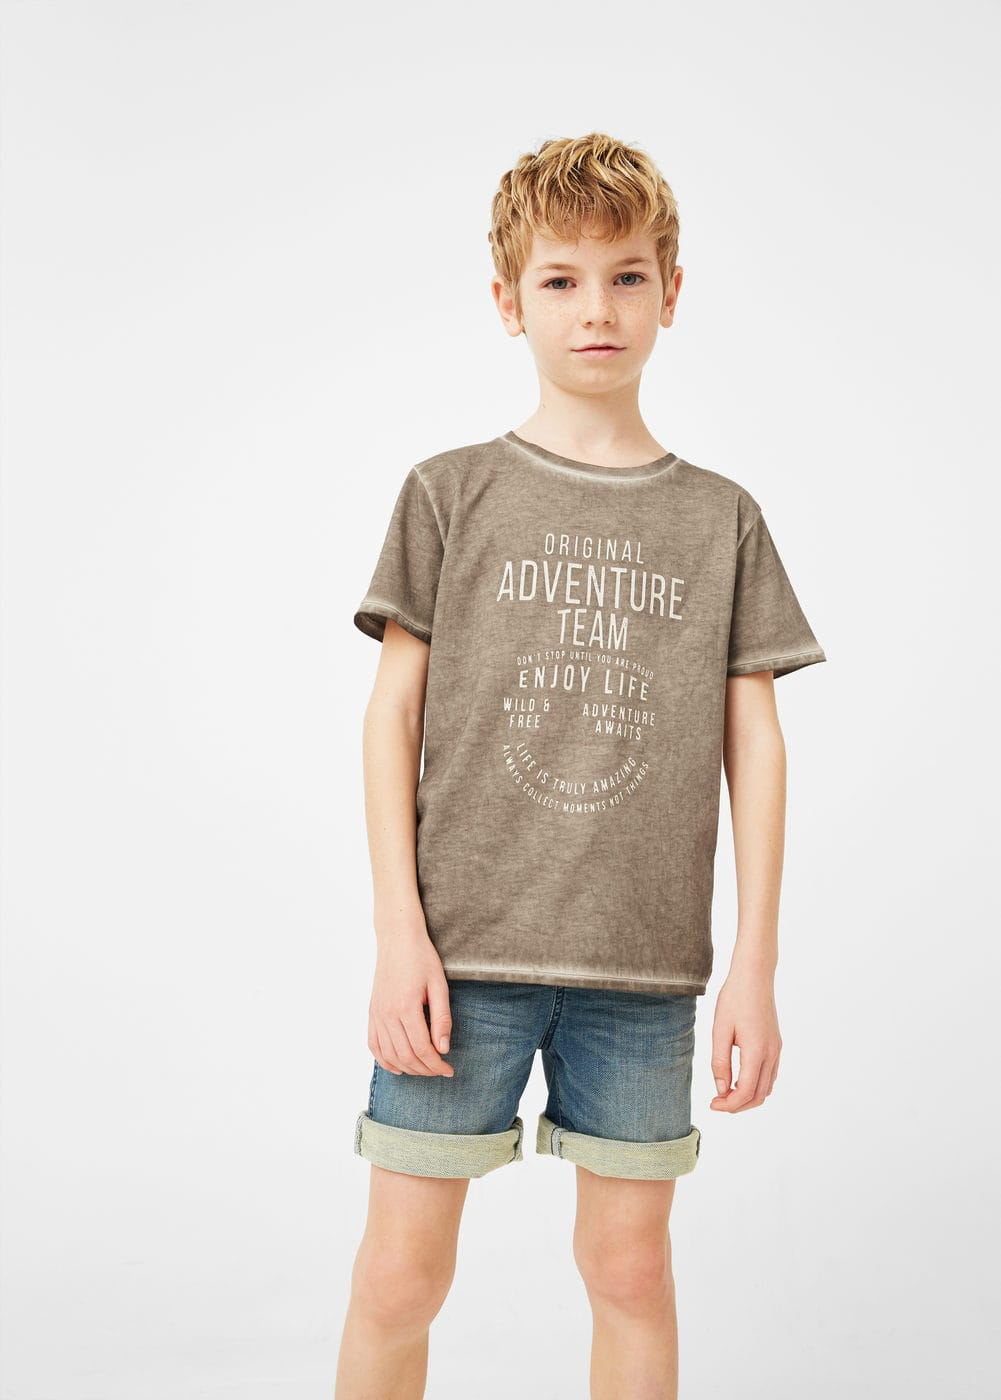 Distressed-effect message t-shirt | MANGO KIDS